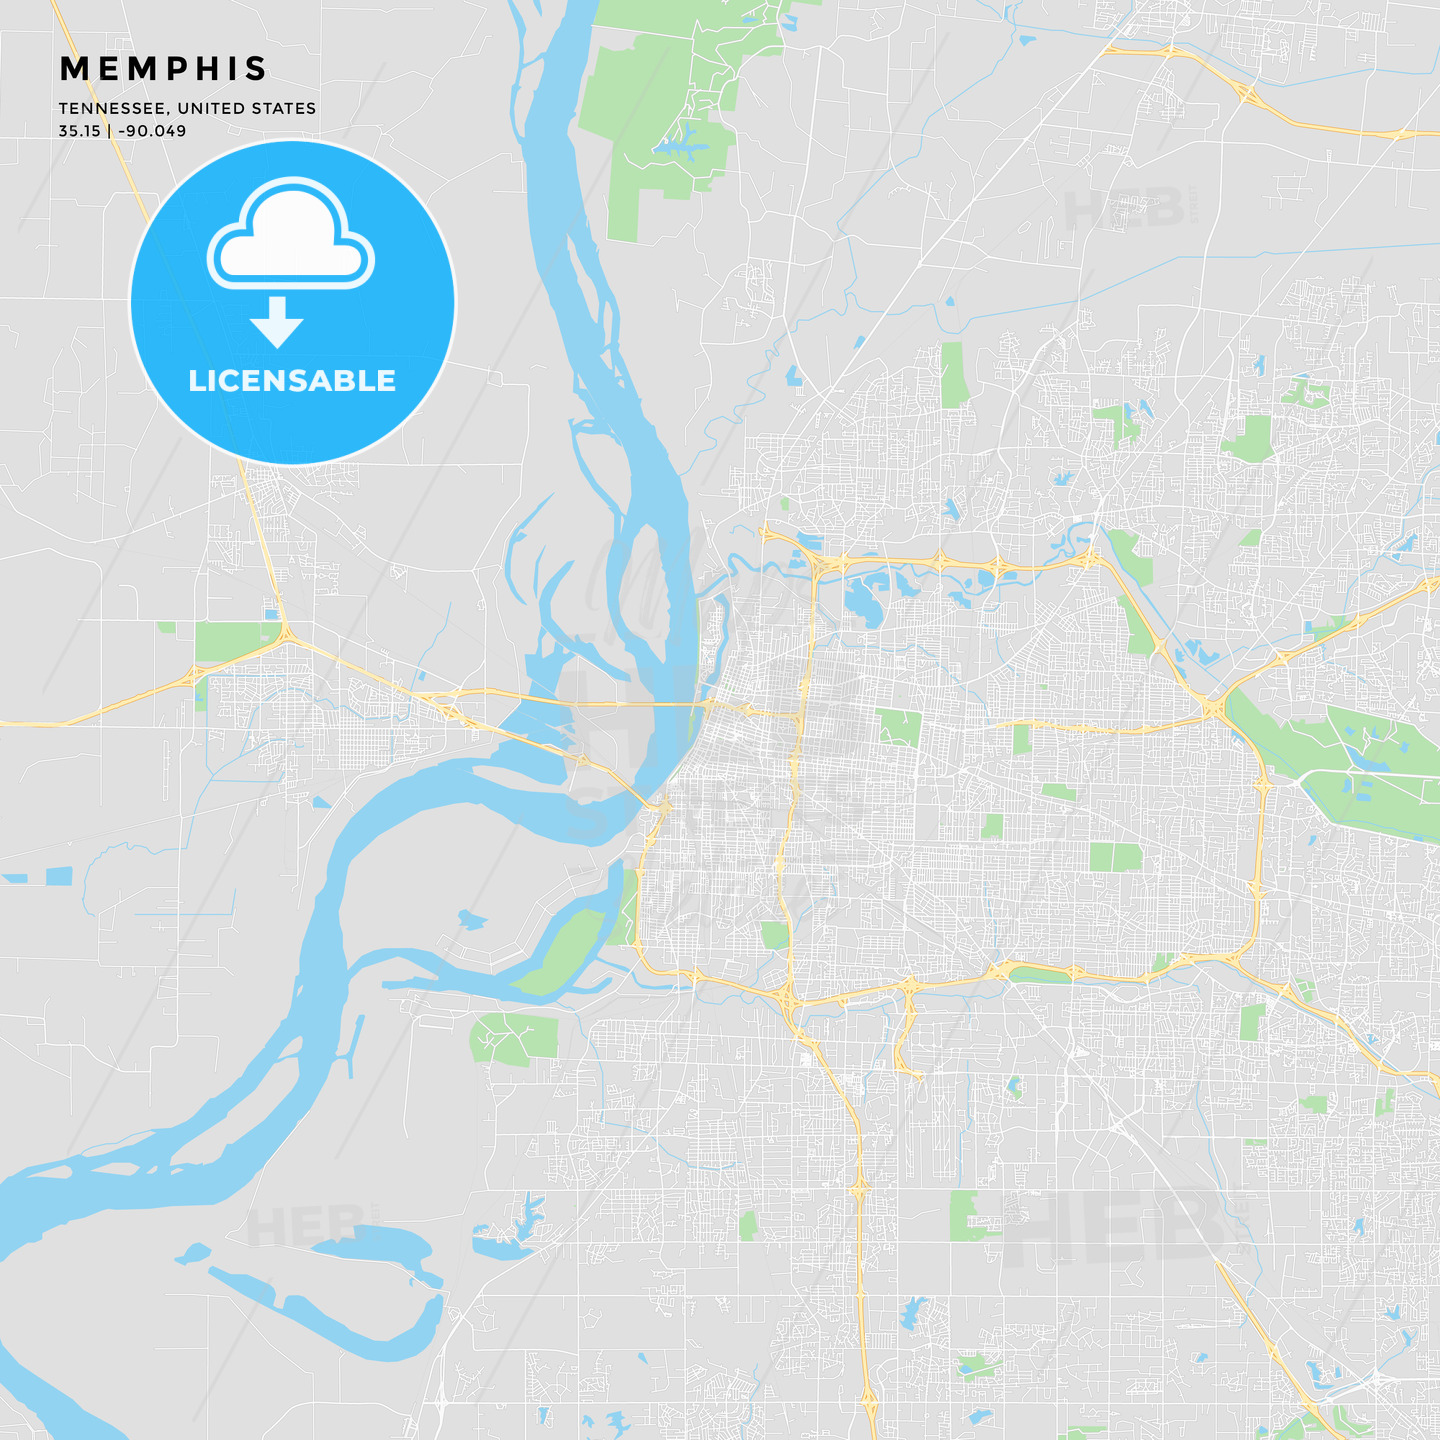 Printable street map of Memphis, Tennessee